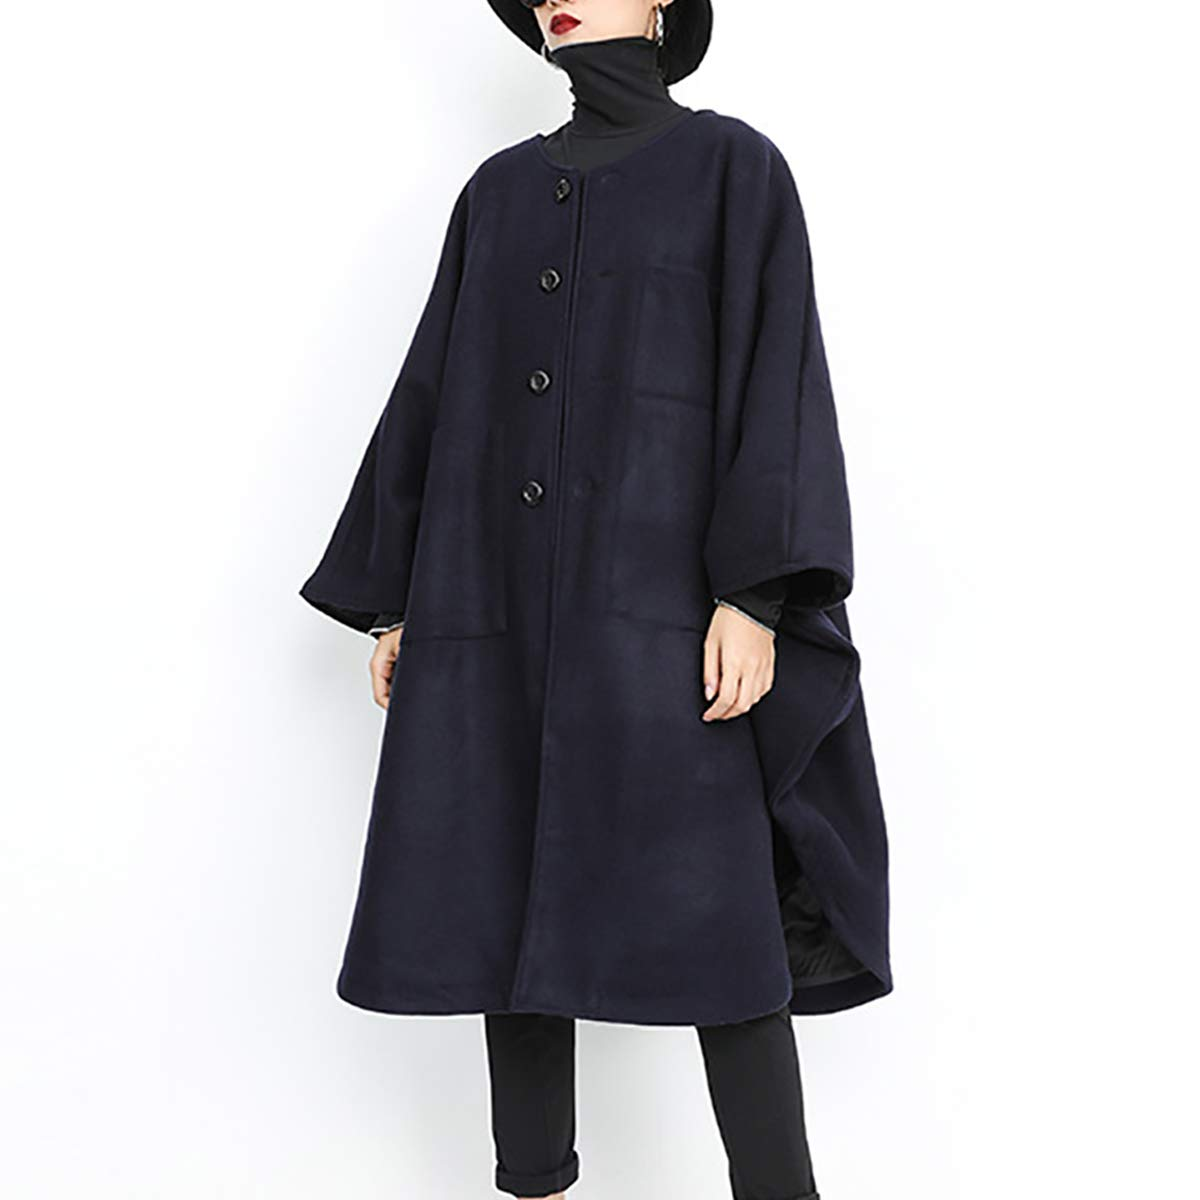 Black Women's Plush Long Coat Winter Warm Loose Cardigan Bat Cloak,Black,F